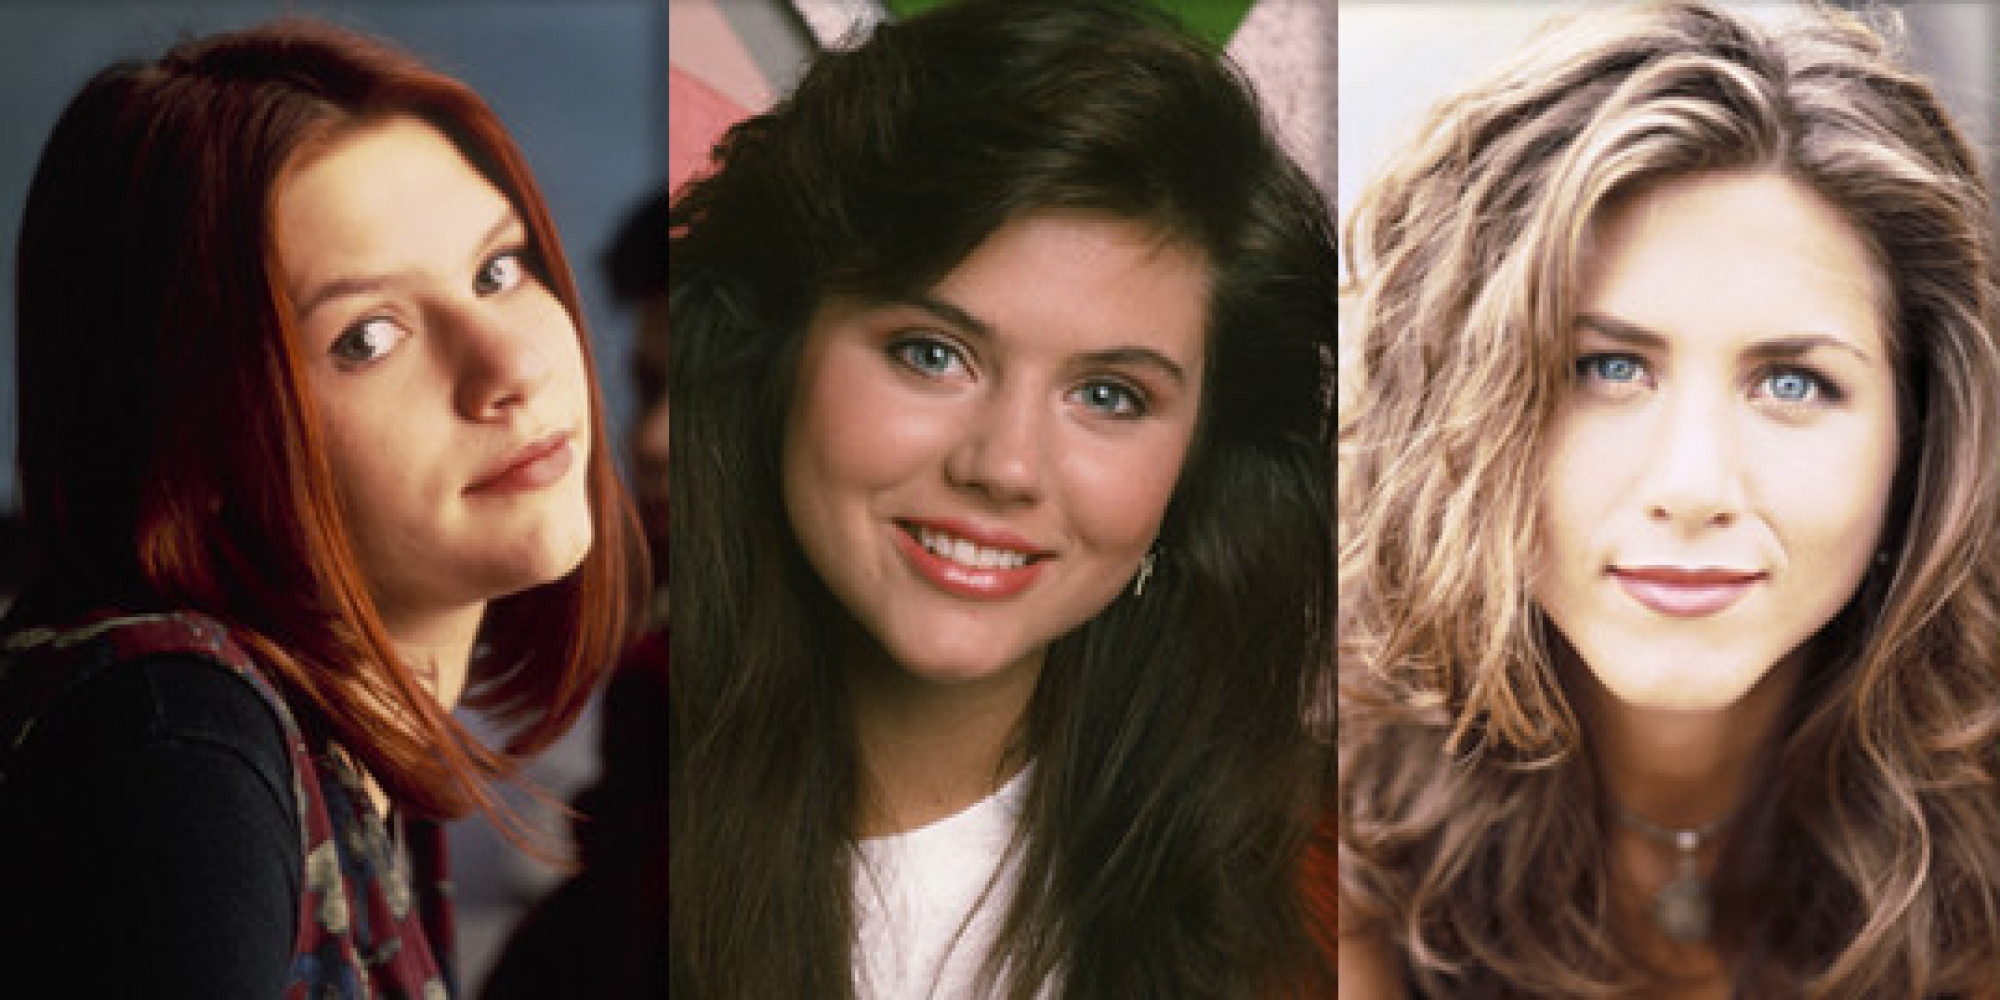 90s Short Hairstyles: '90s Hairstyles We Thought Were Absolutely Cool (PHOTOS